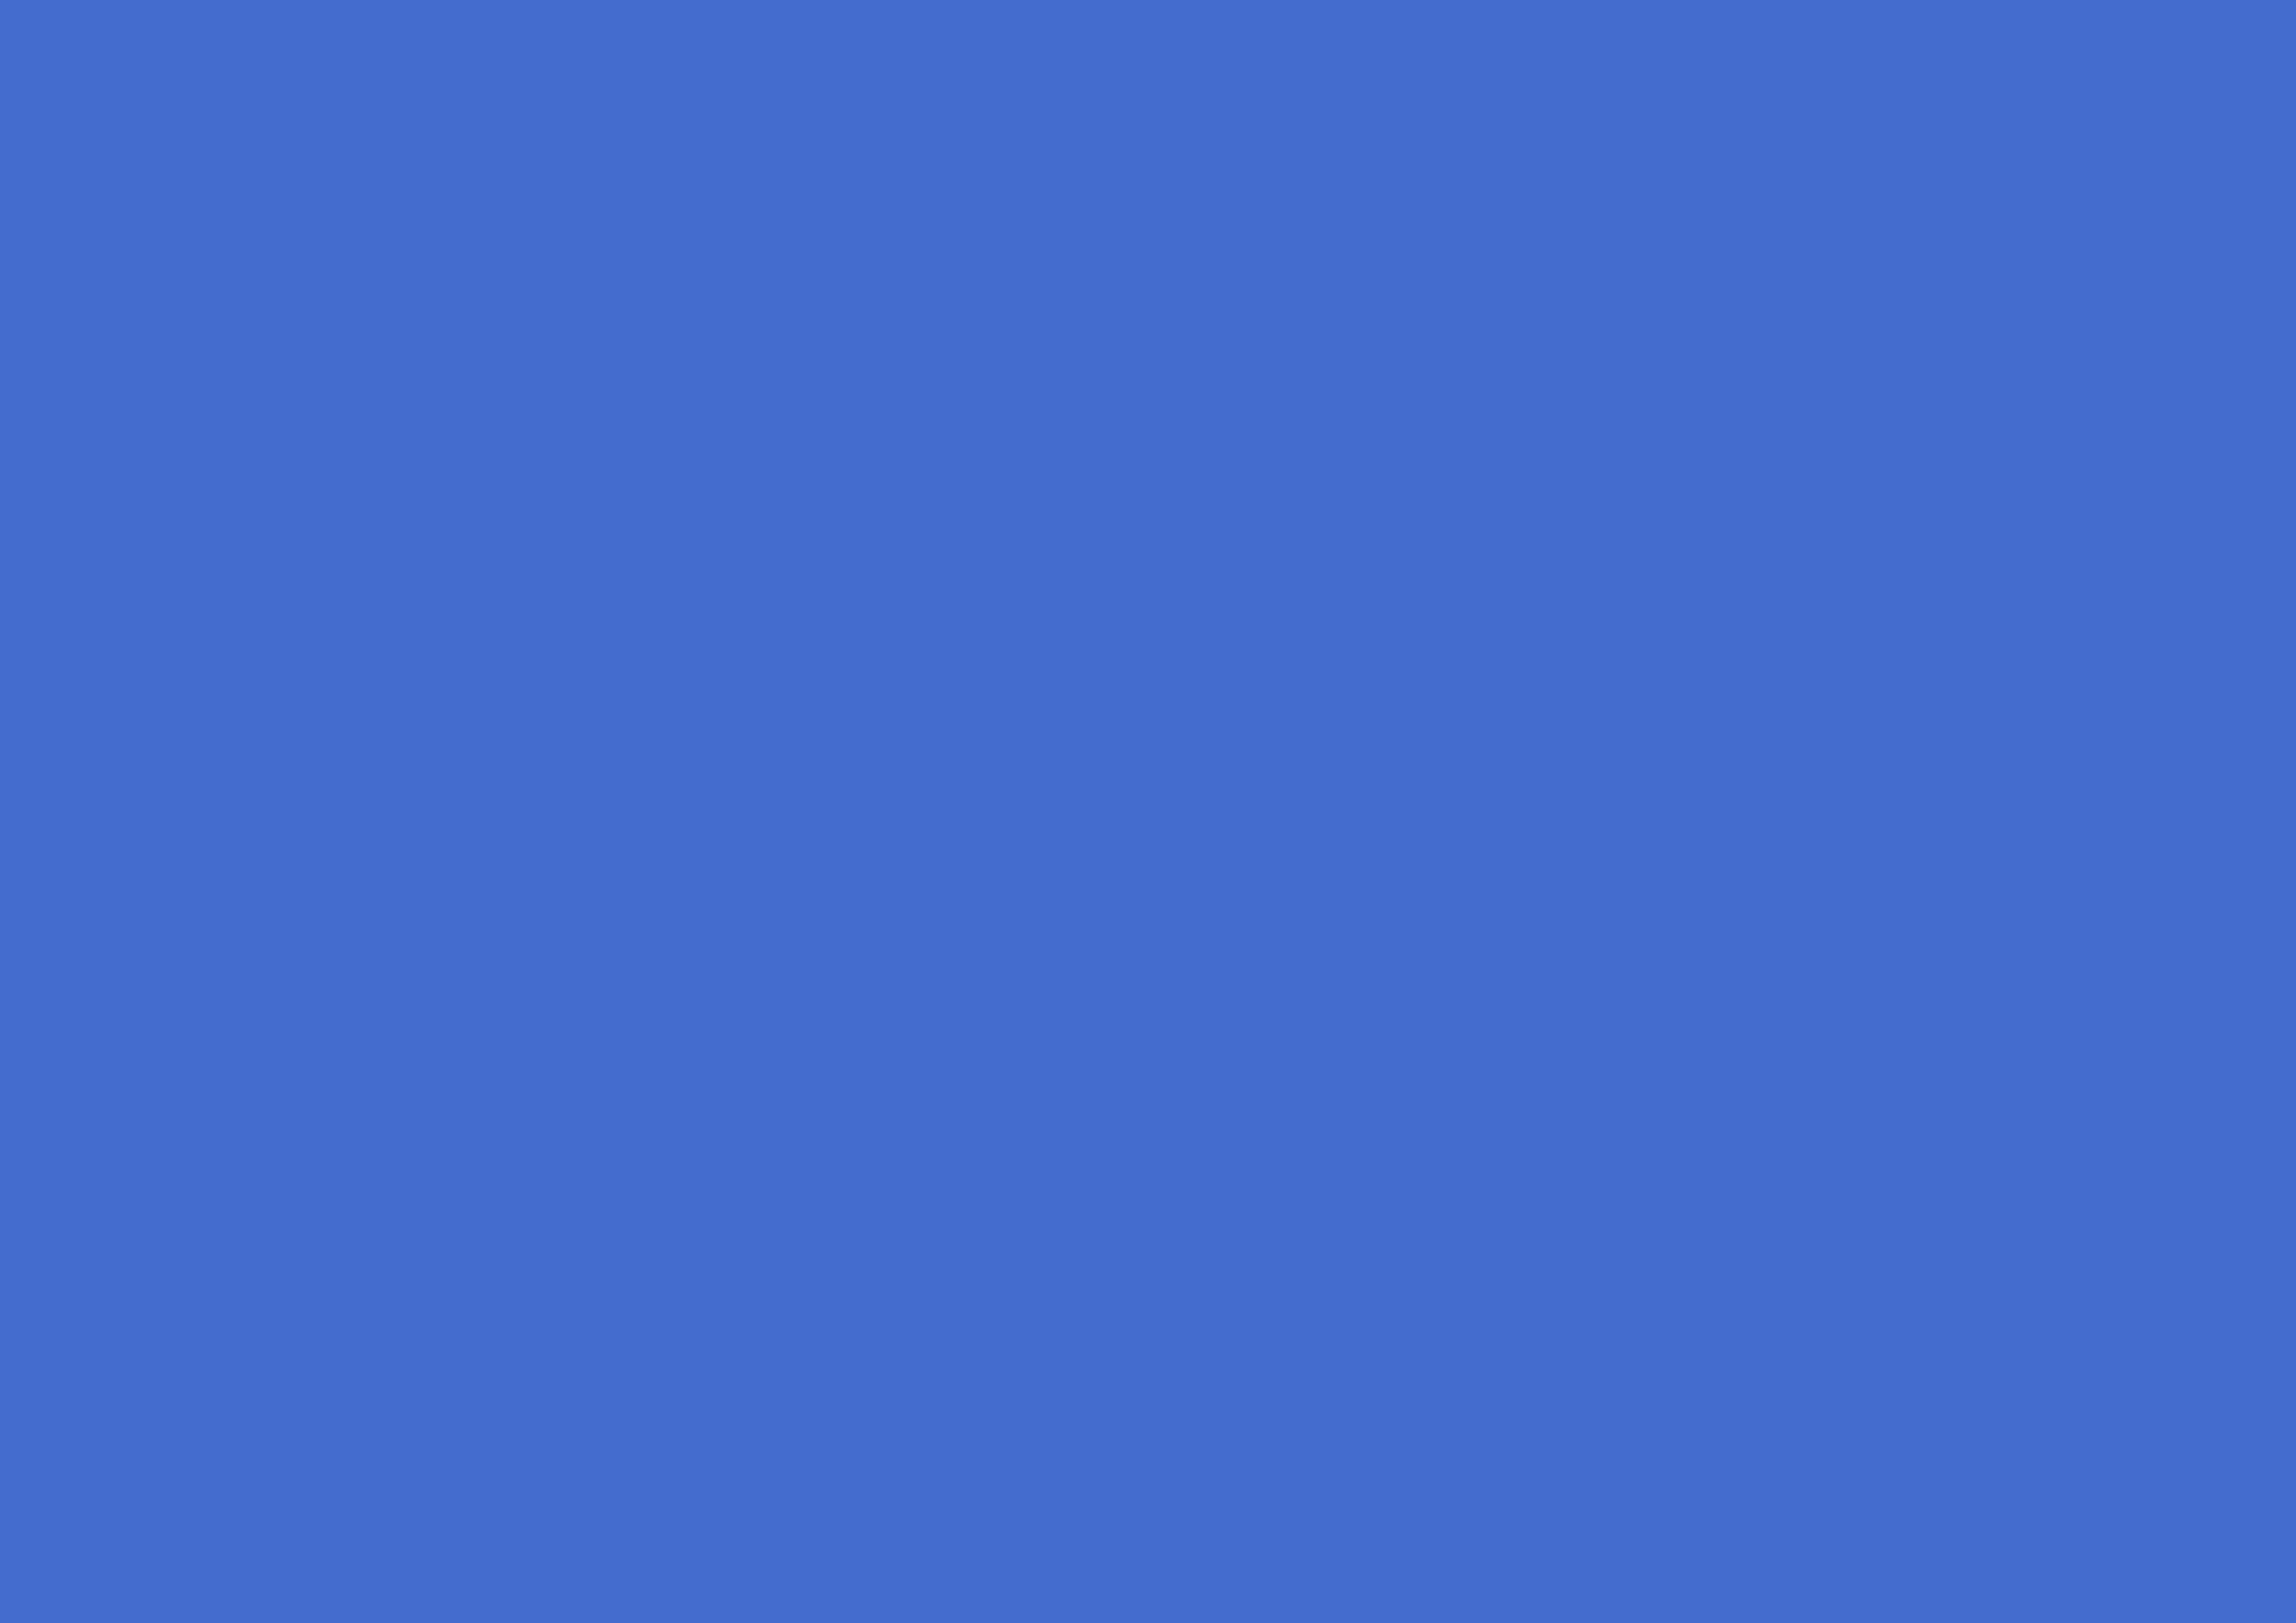 3508x2480 Han Blue Solid Color Background